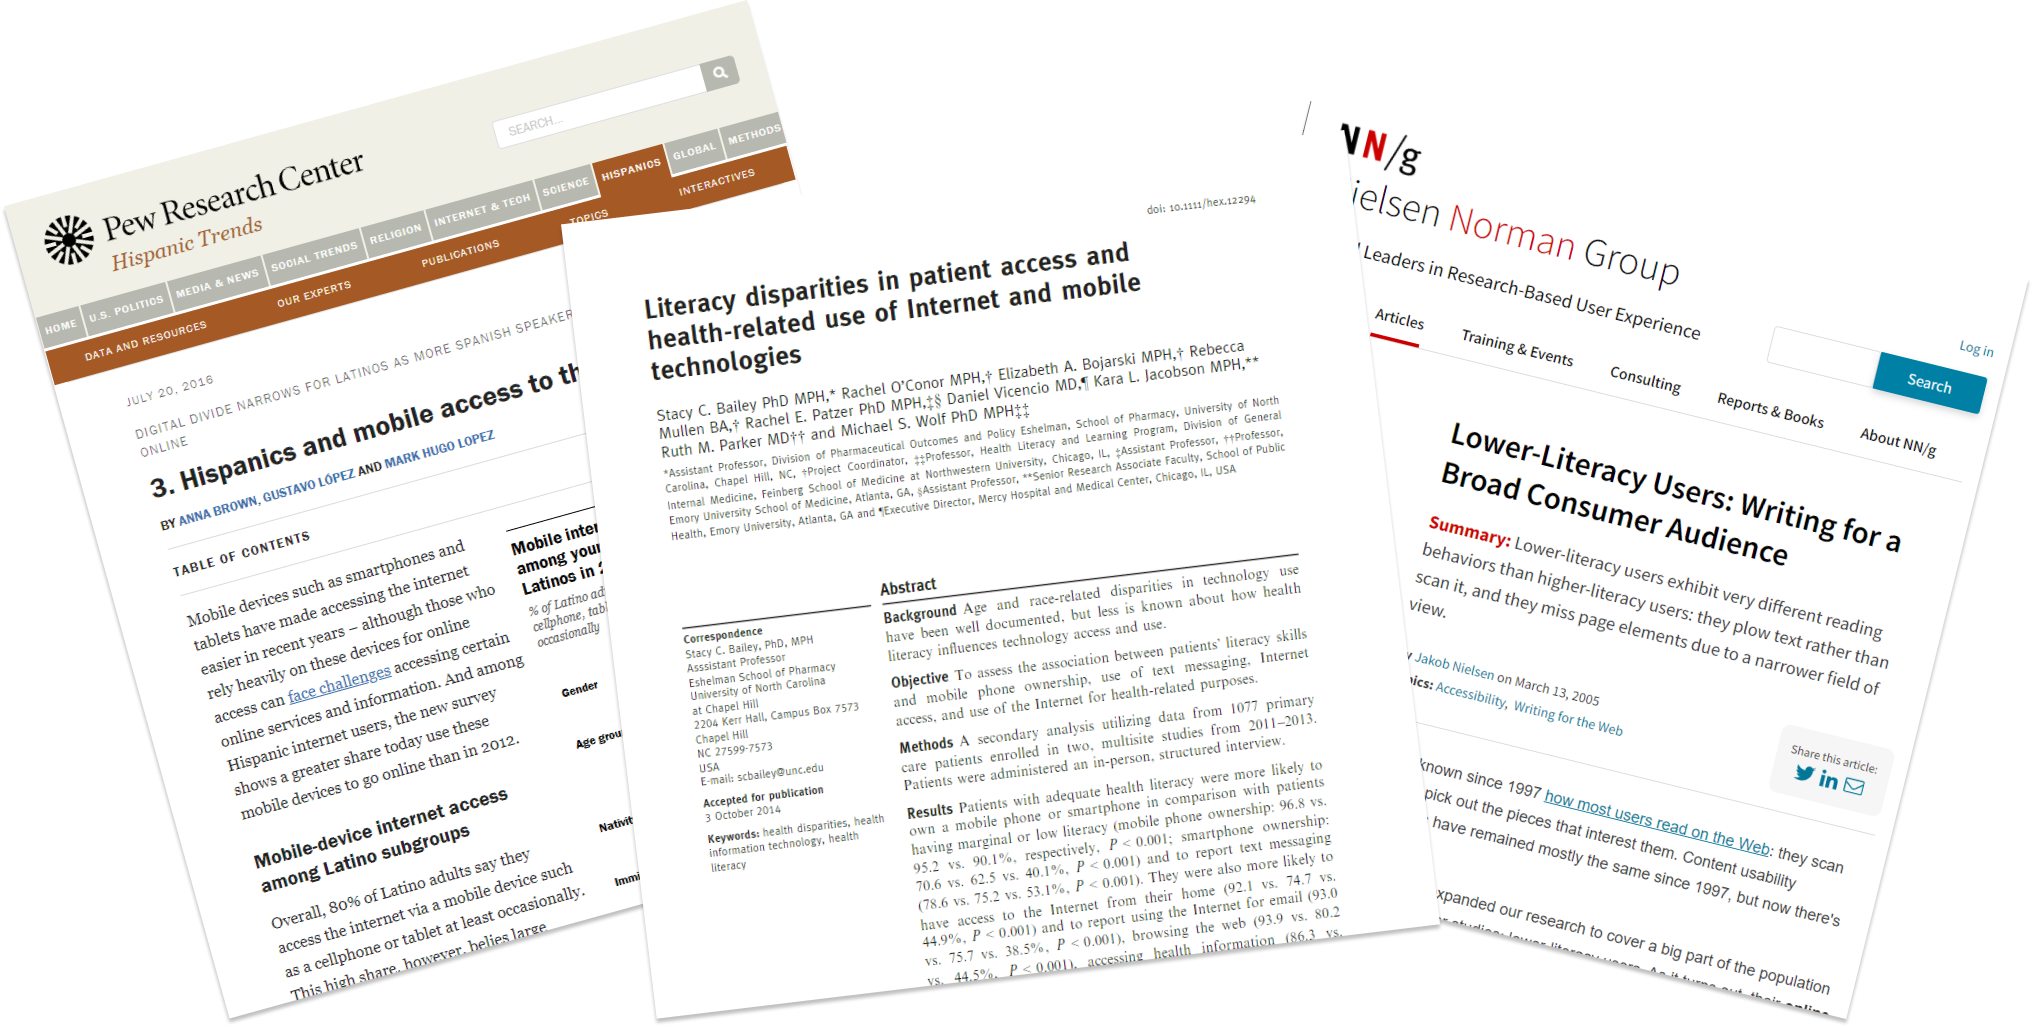 A sampling of reviewed research articles, sourced from Pew, Nielsen and academic journals